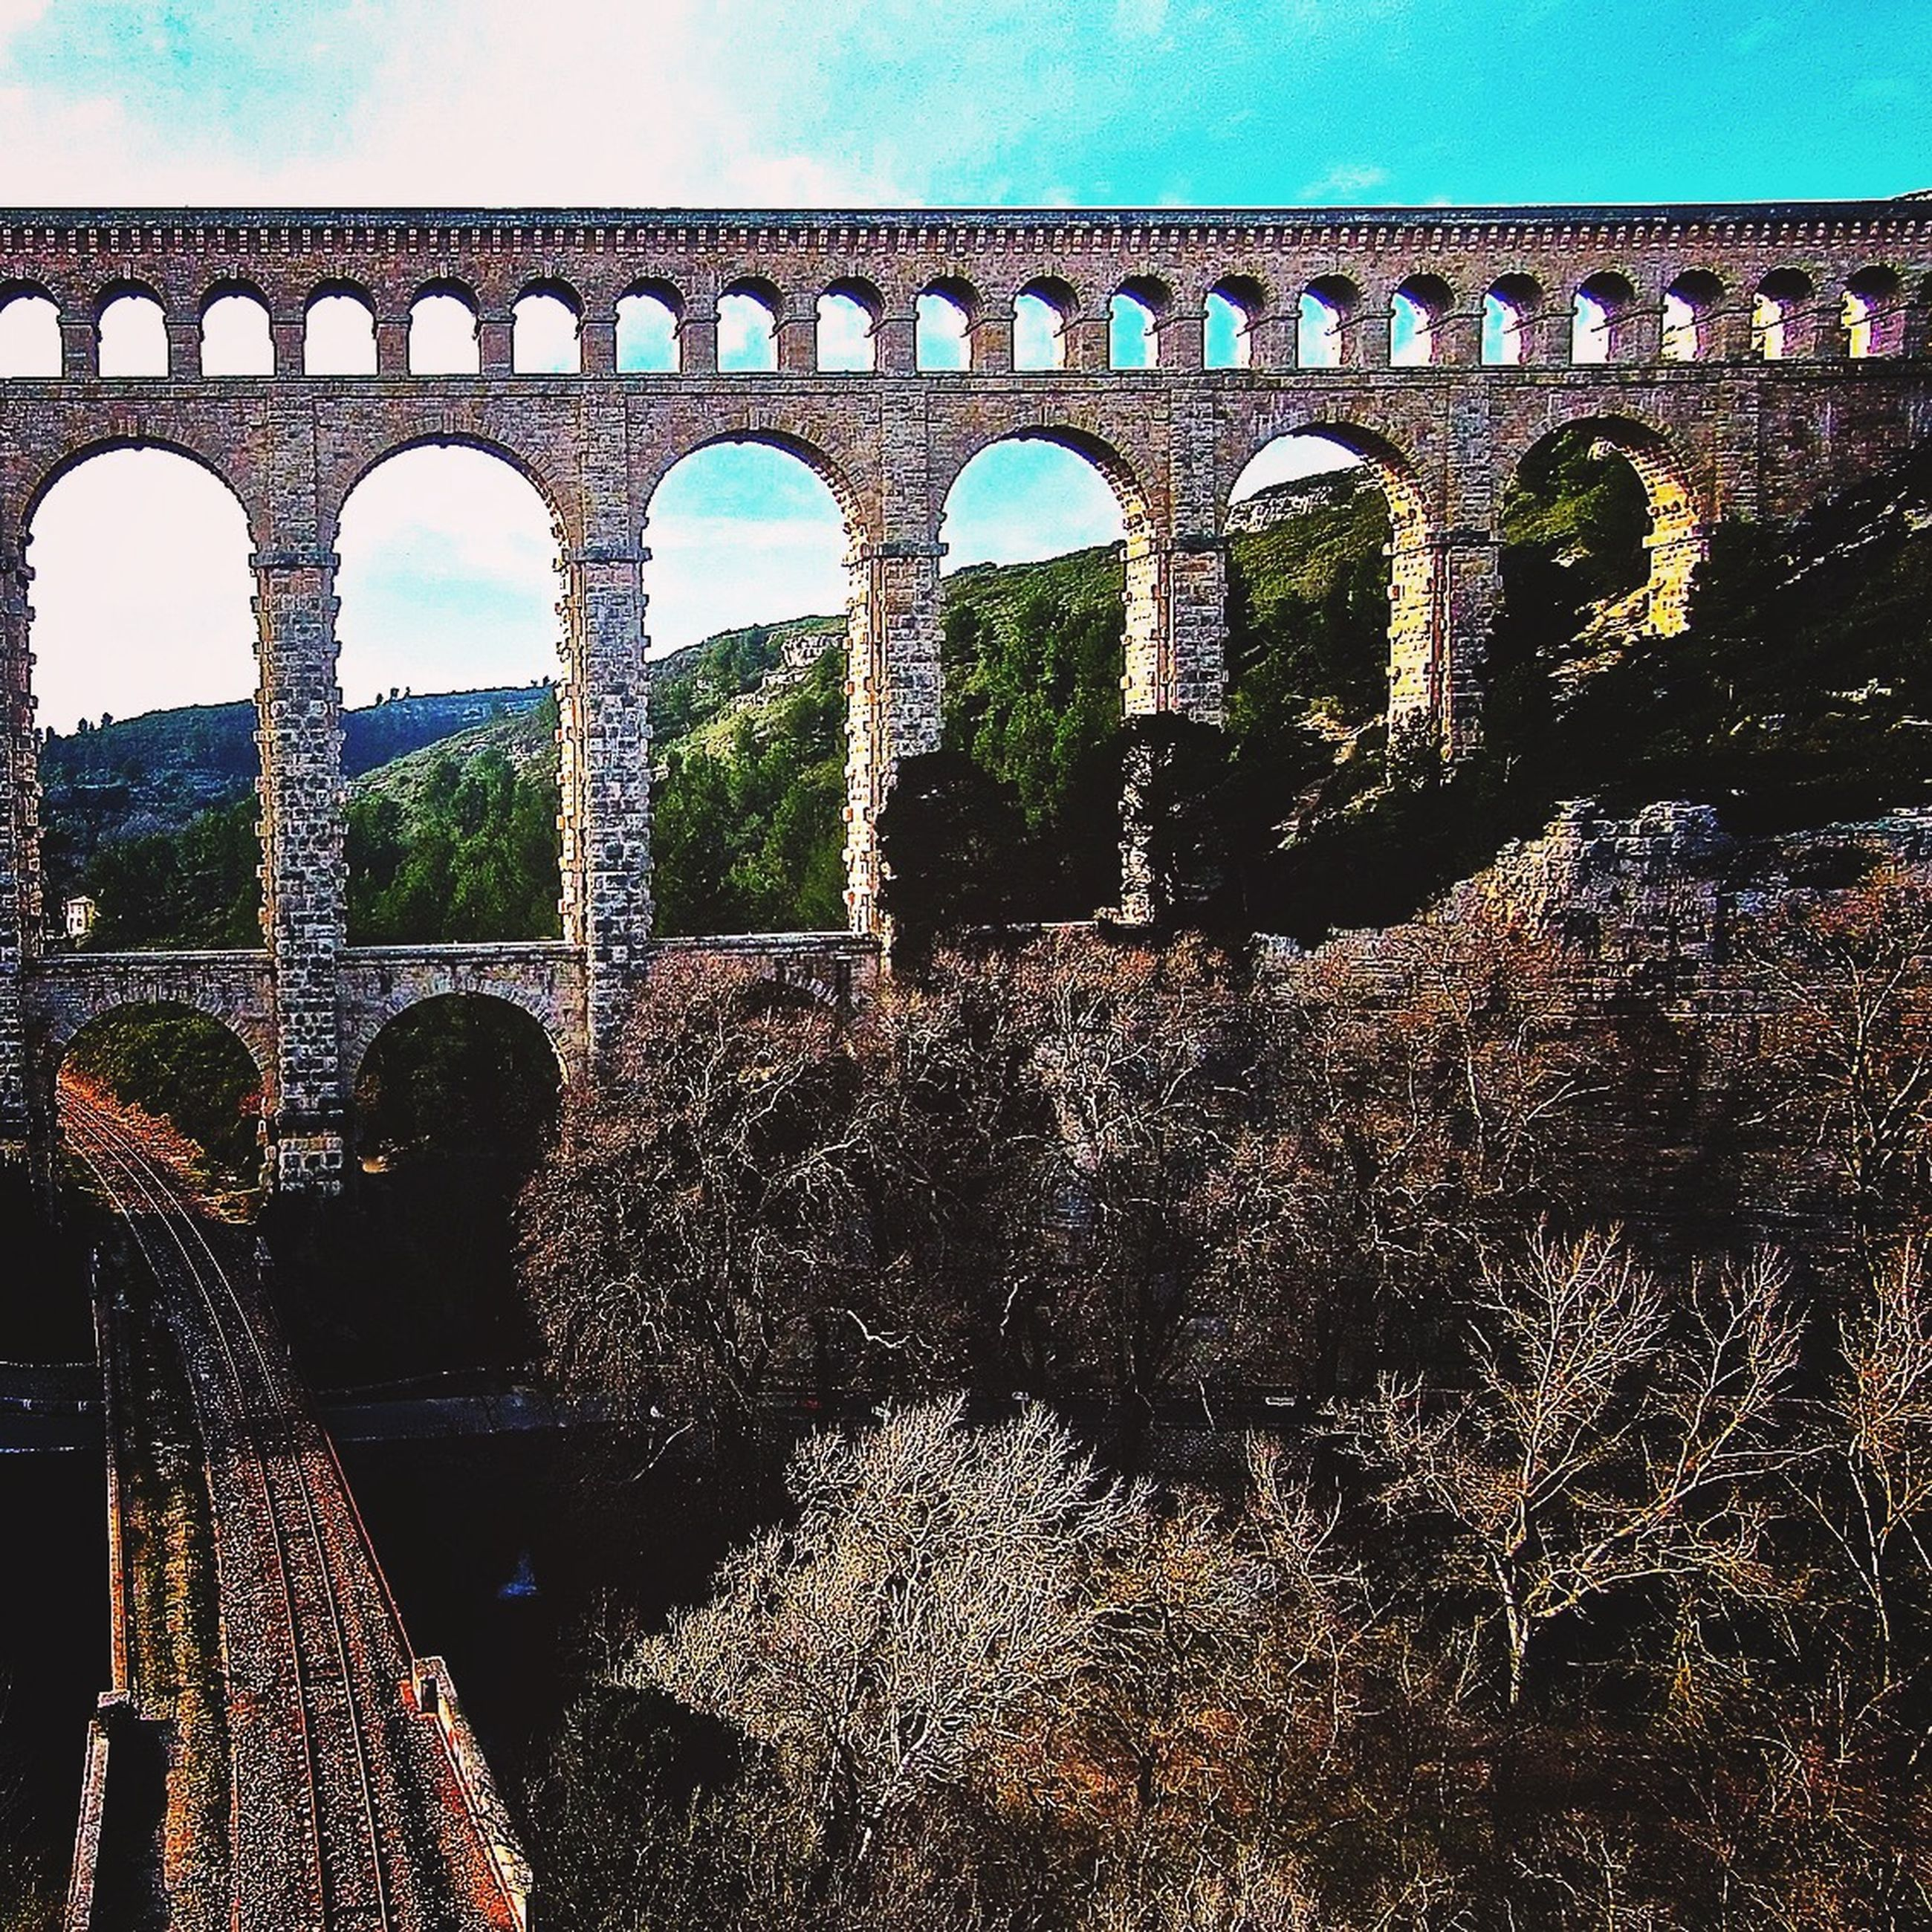 architecture, built structure, arch, bridge - man made structure, connection, arch bridge, sky, bridge, history, architectural column, engineering, low angle view, river, no people, outdoors, day, water, clear sky, nature, travel destinations